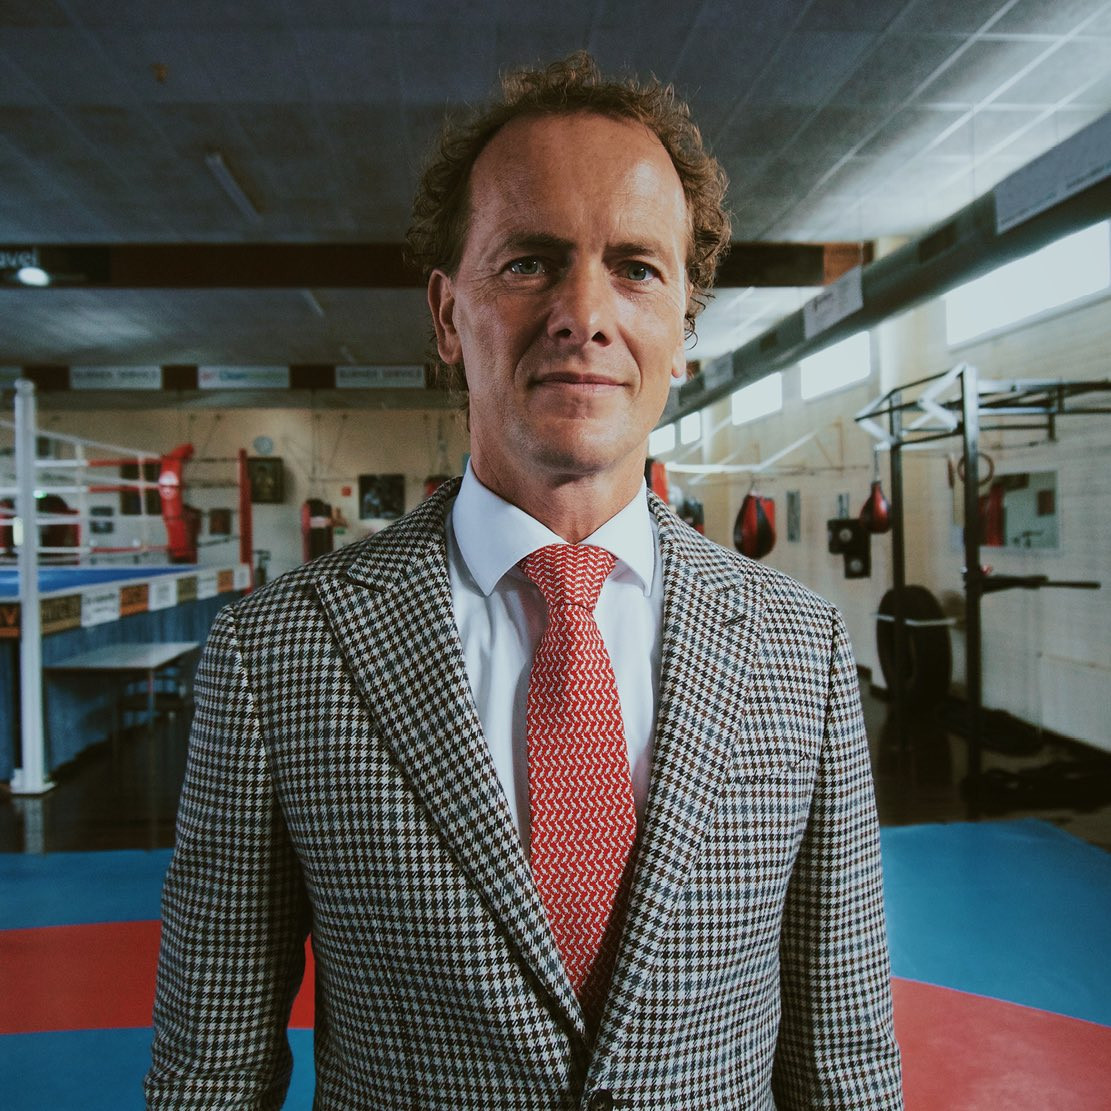 Van der Vorst receives support from five Nordic countries in AIBA President bid